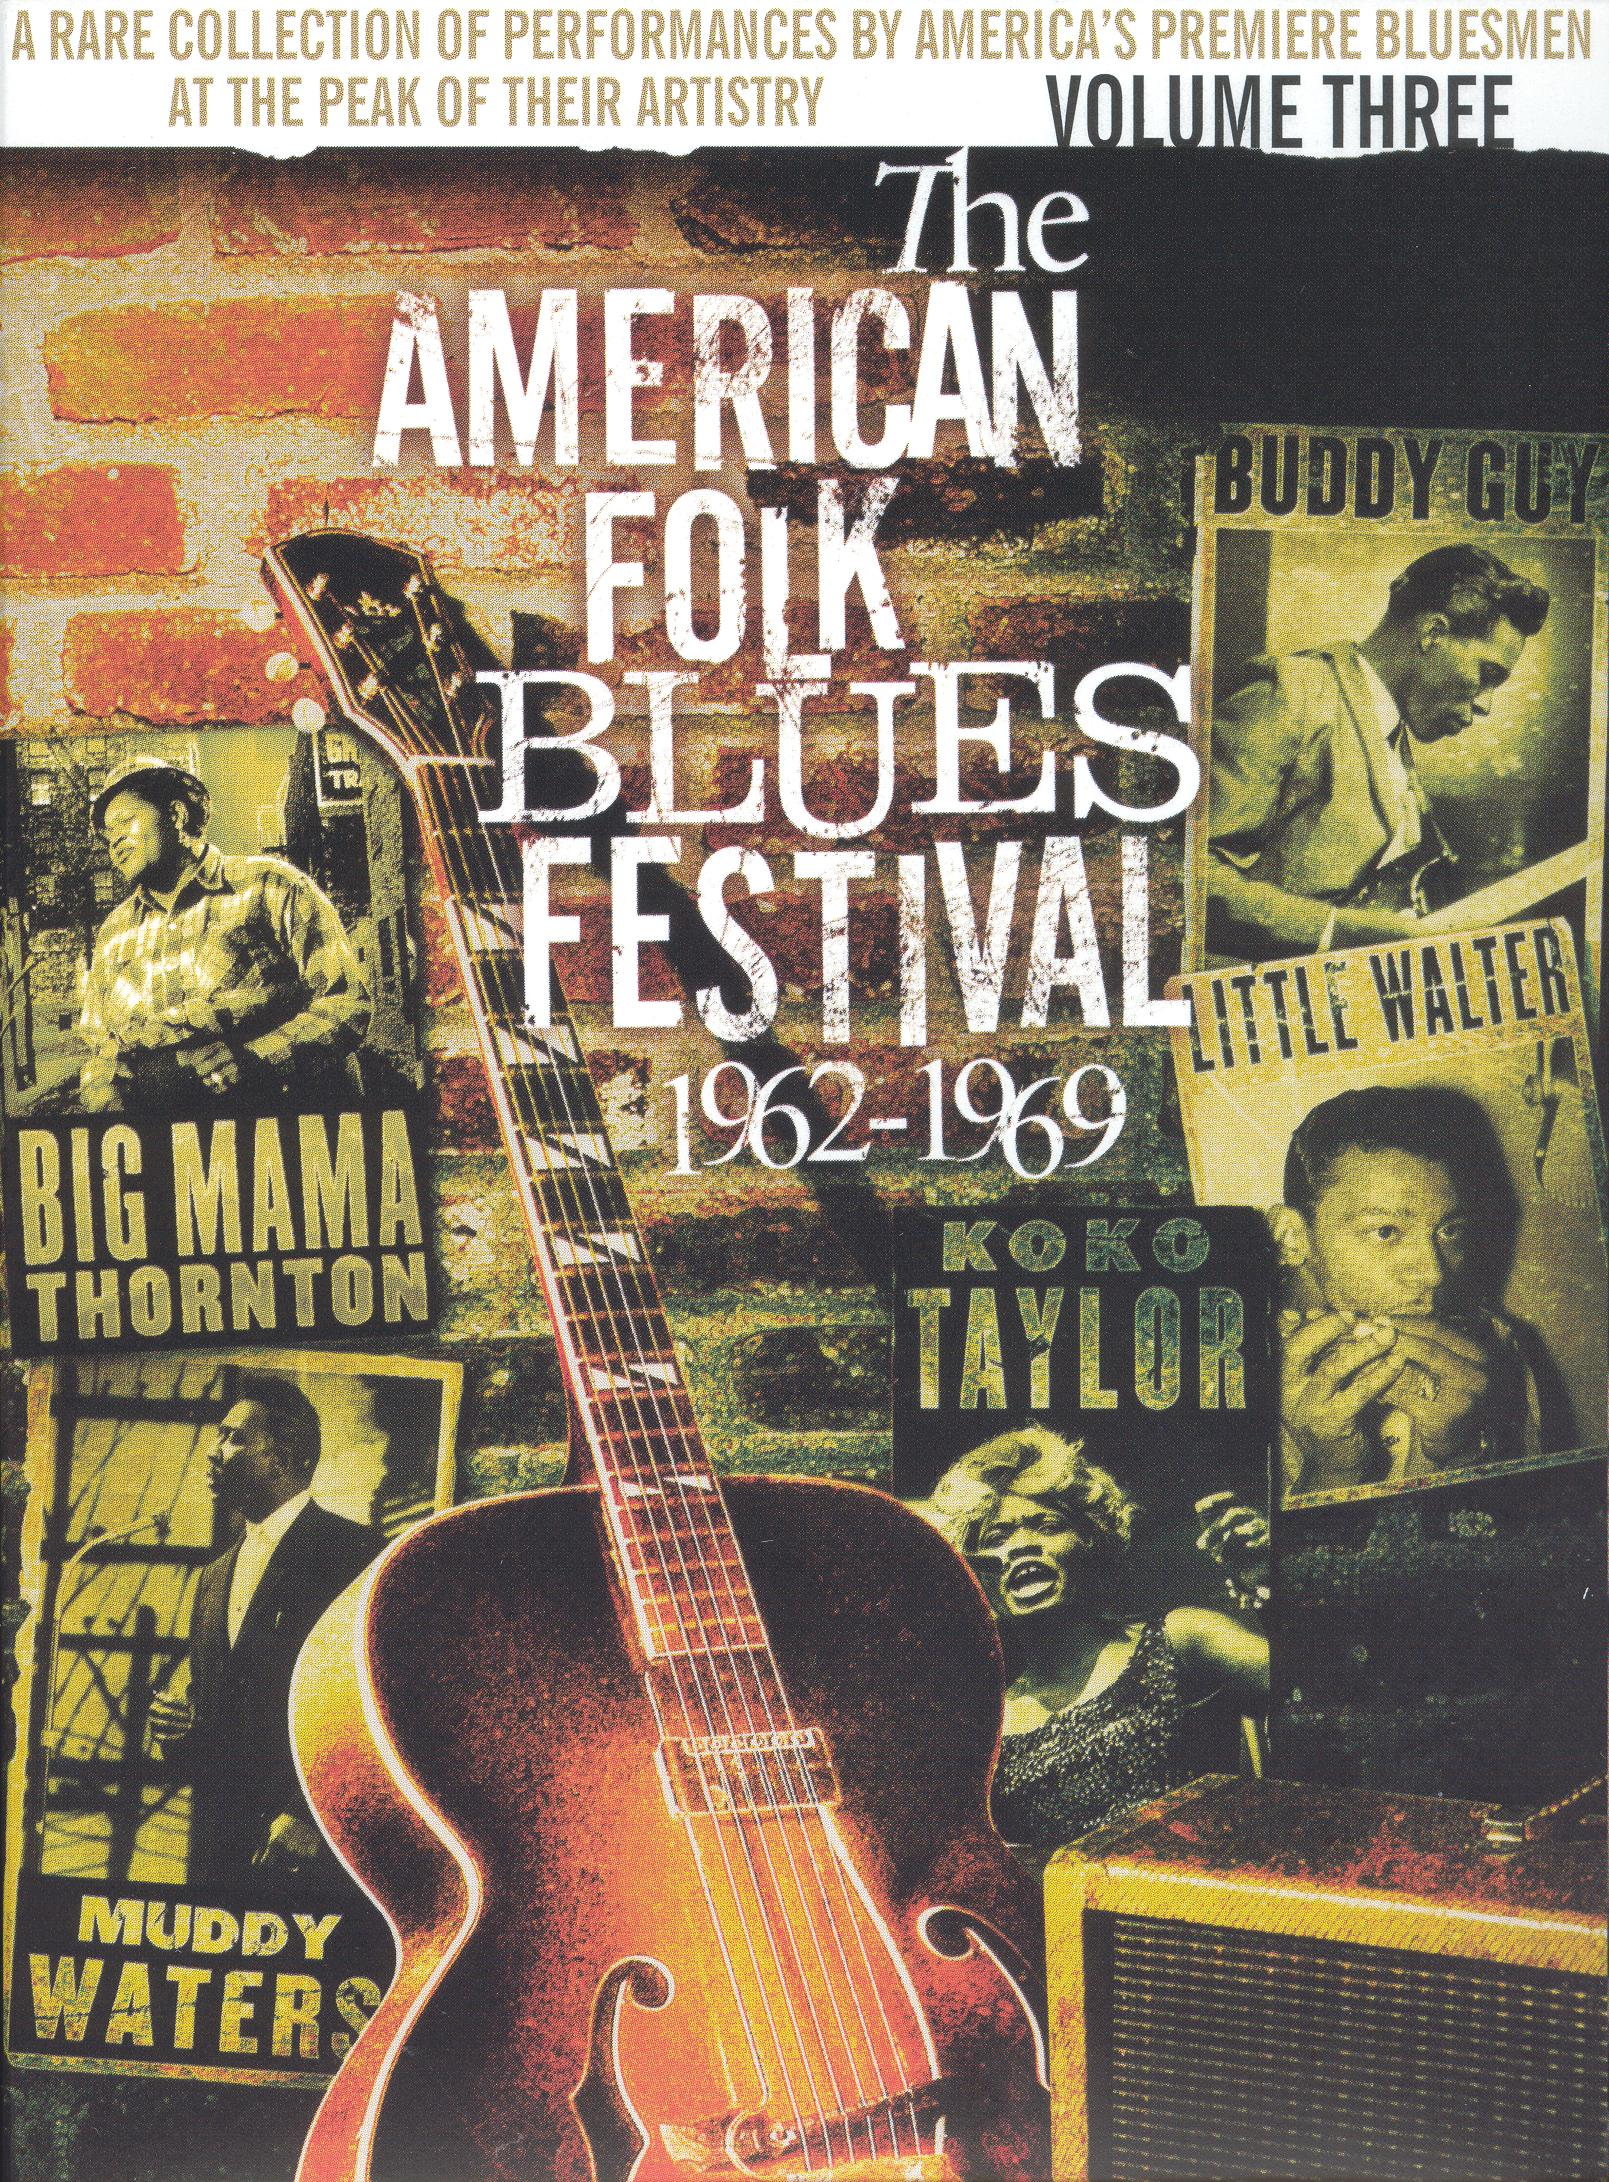 American Folk Blues Festival 1962-1969, Vol. 3